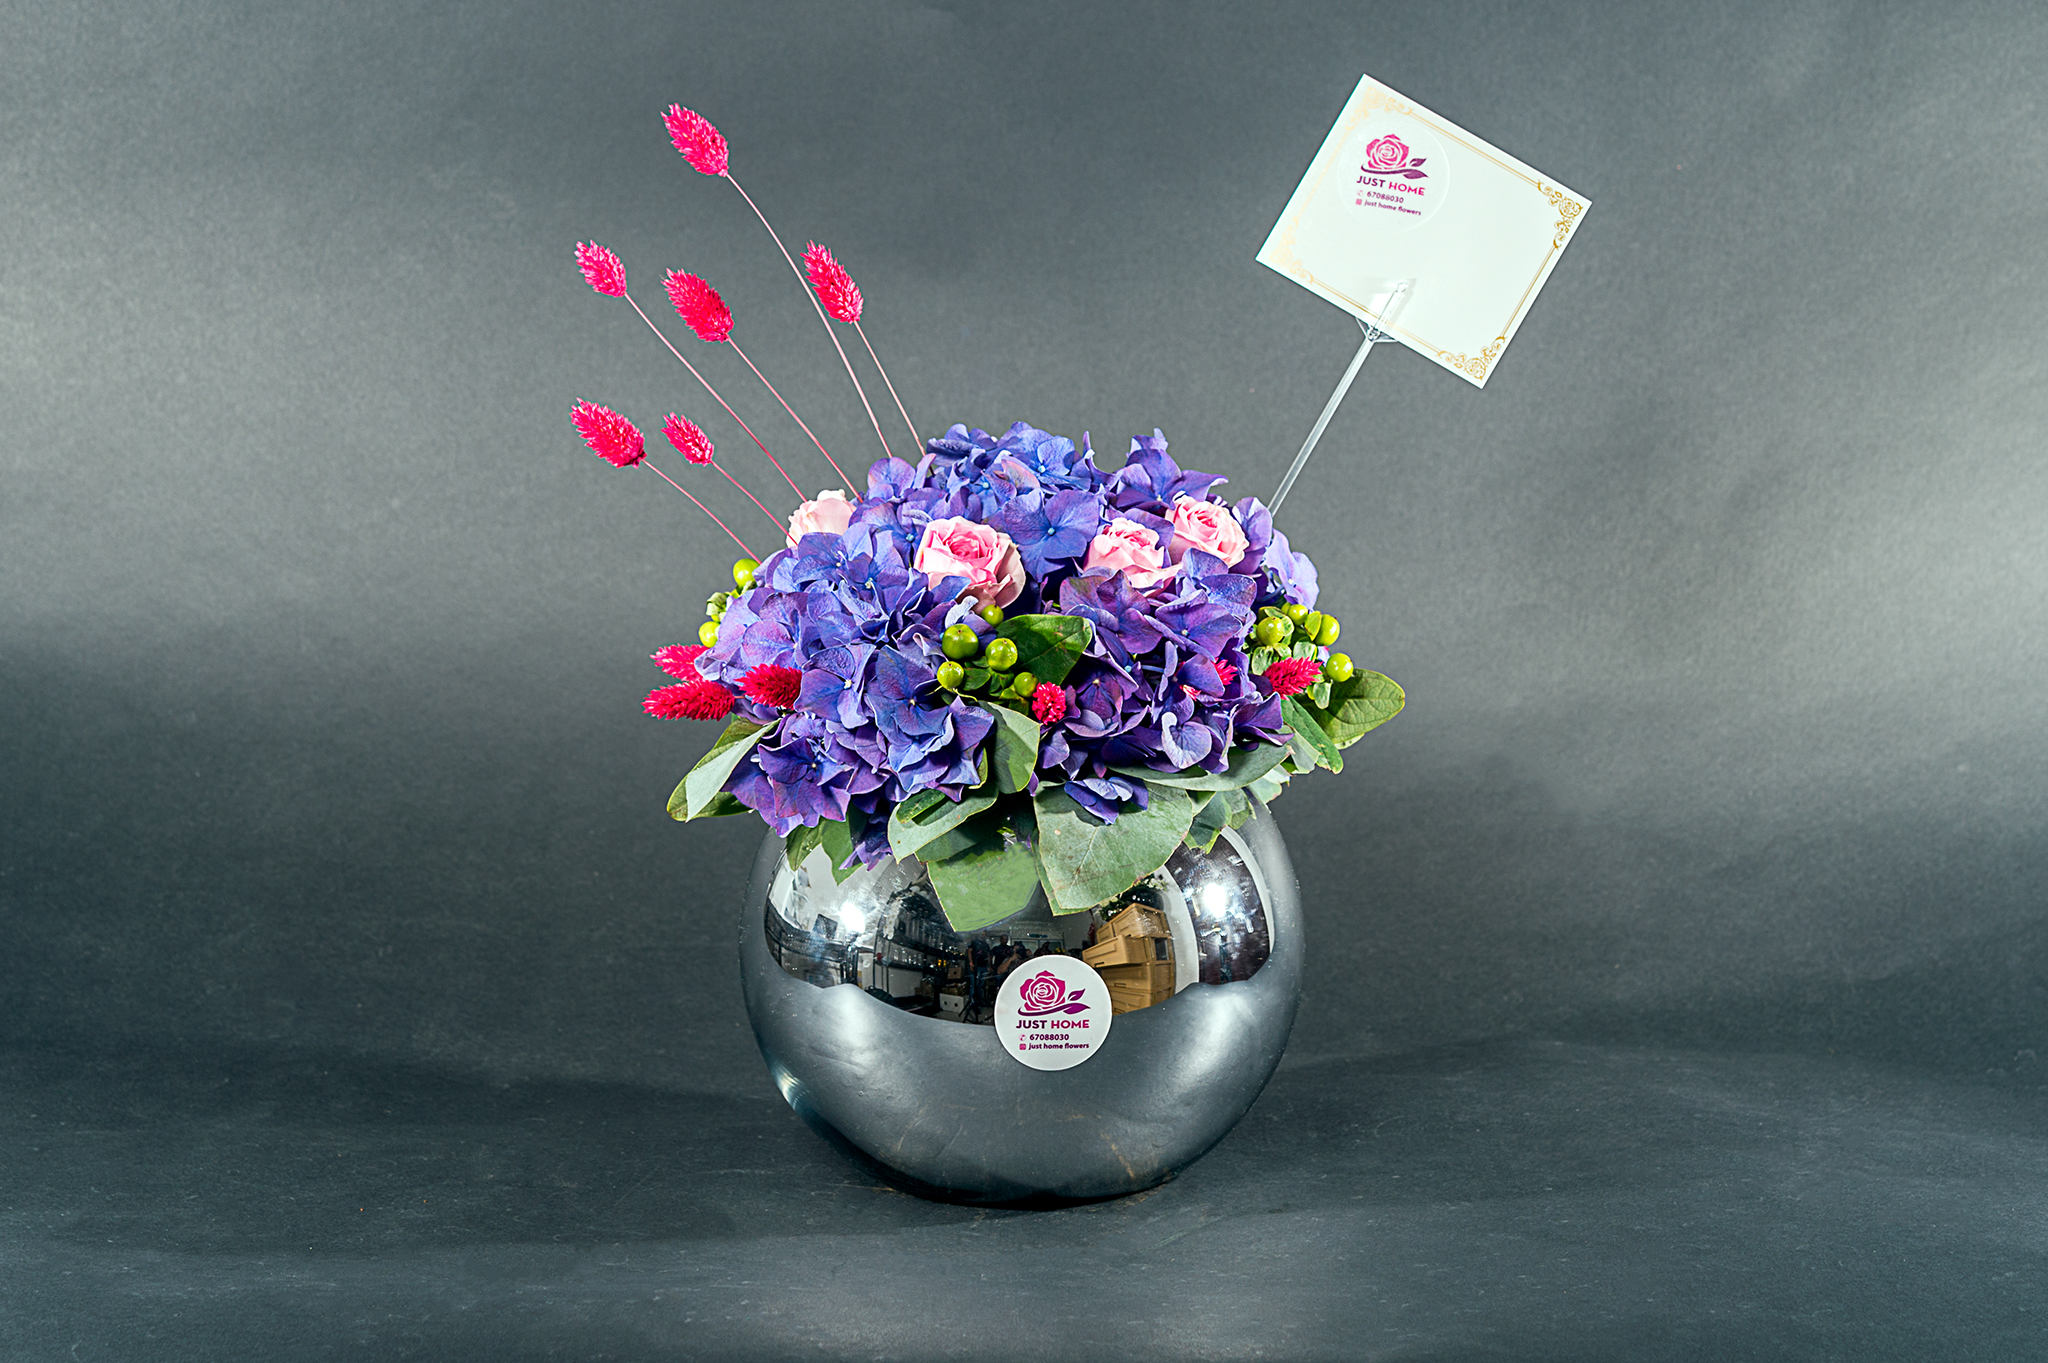 Love And Care 'Flower with Base'